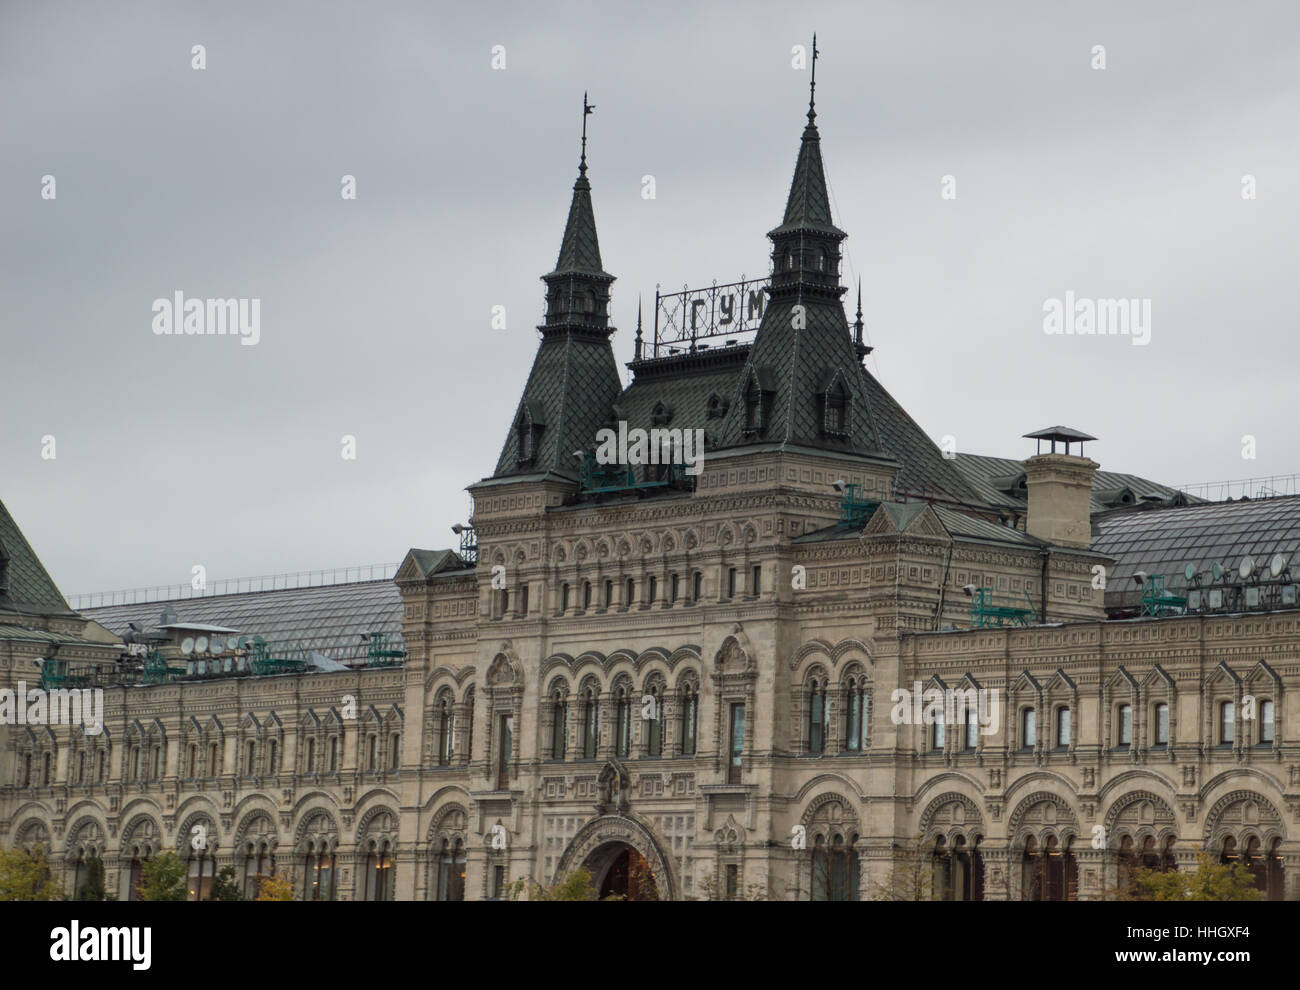 The ornate exterior of GUM, an upscale indoor shopping mall on Red Square in Moscow Russia. Photographed against - Stock Image